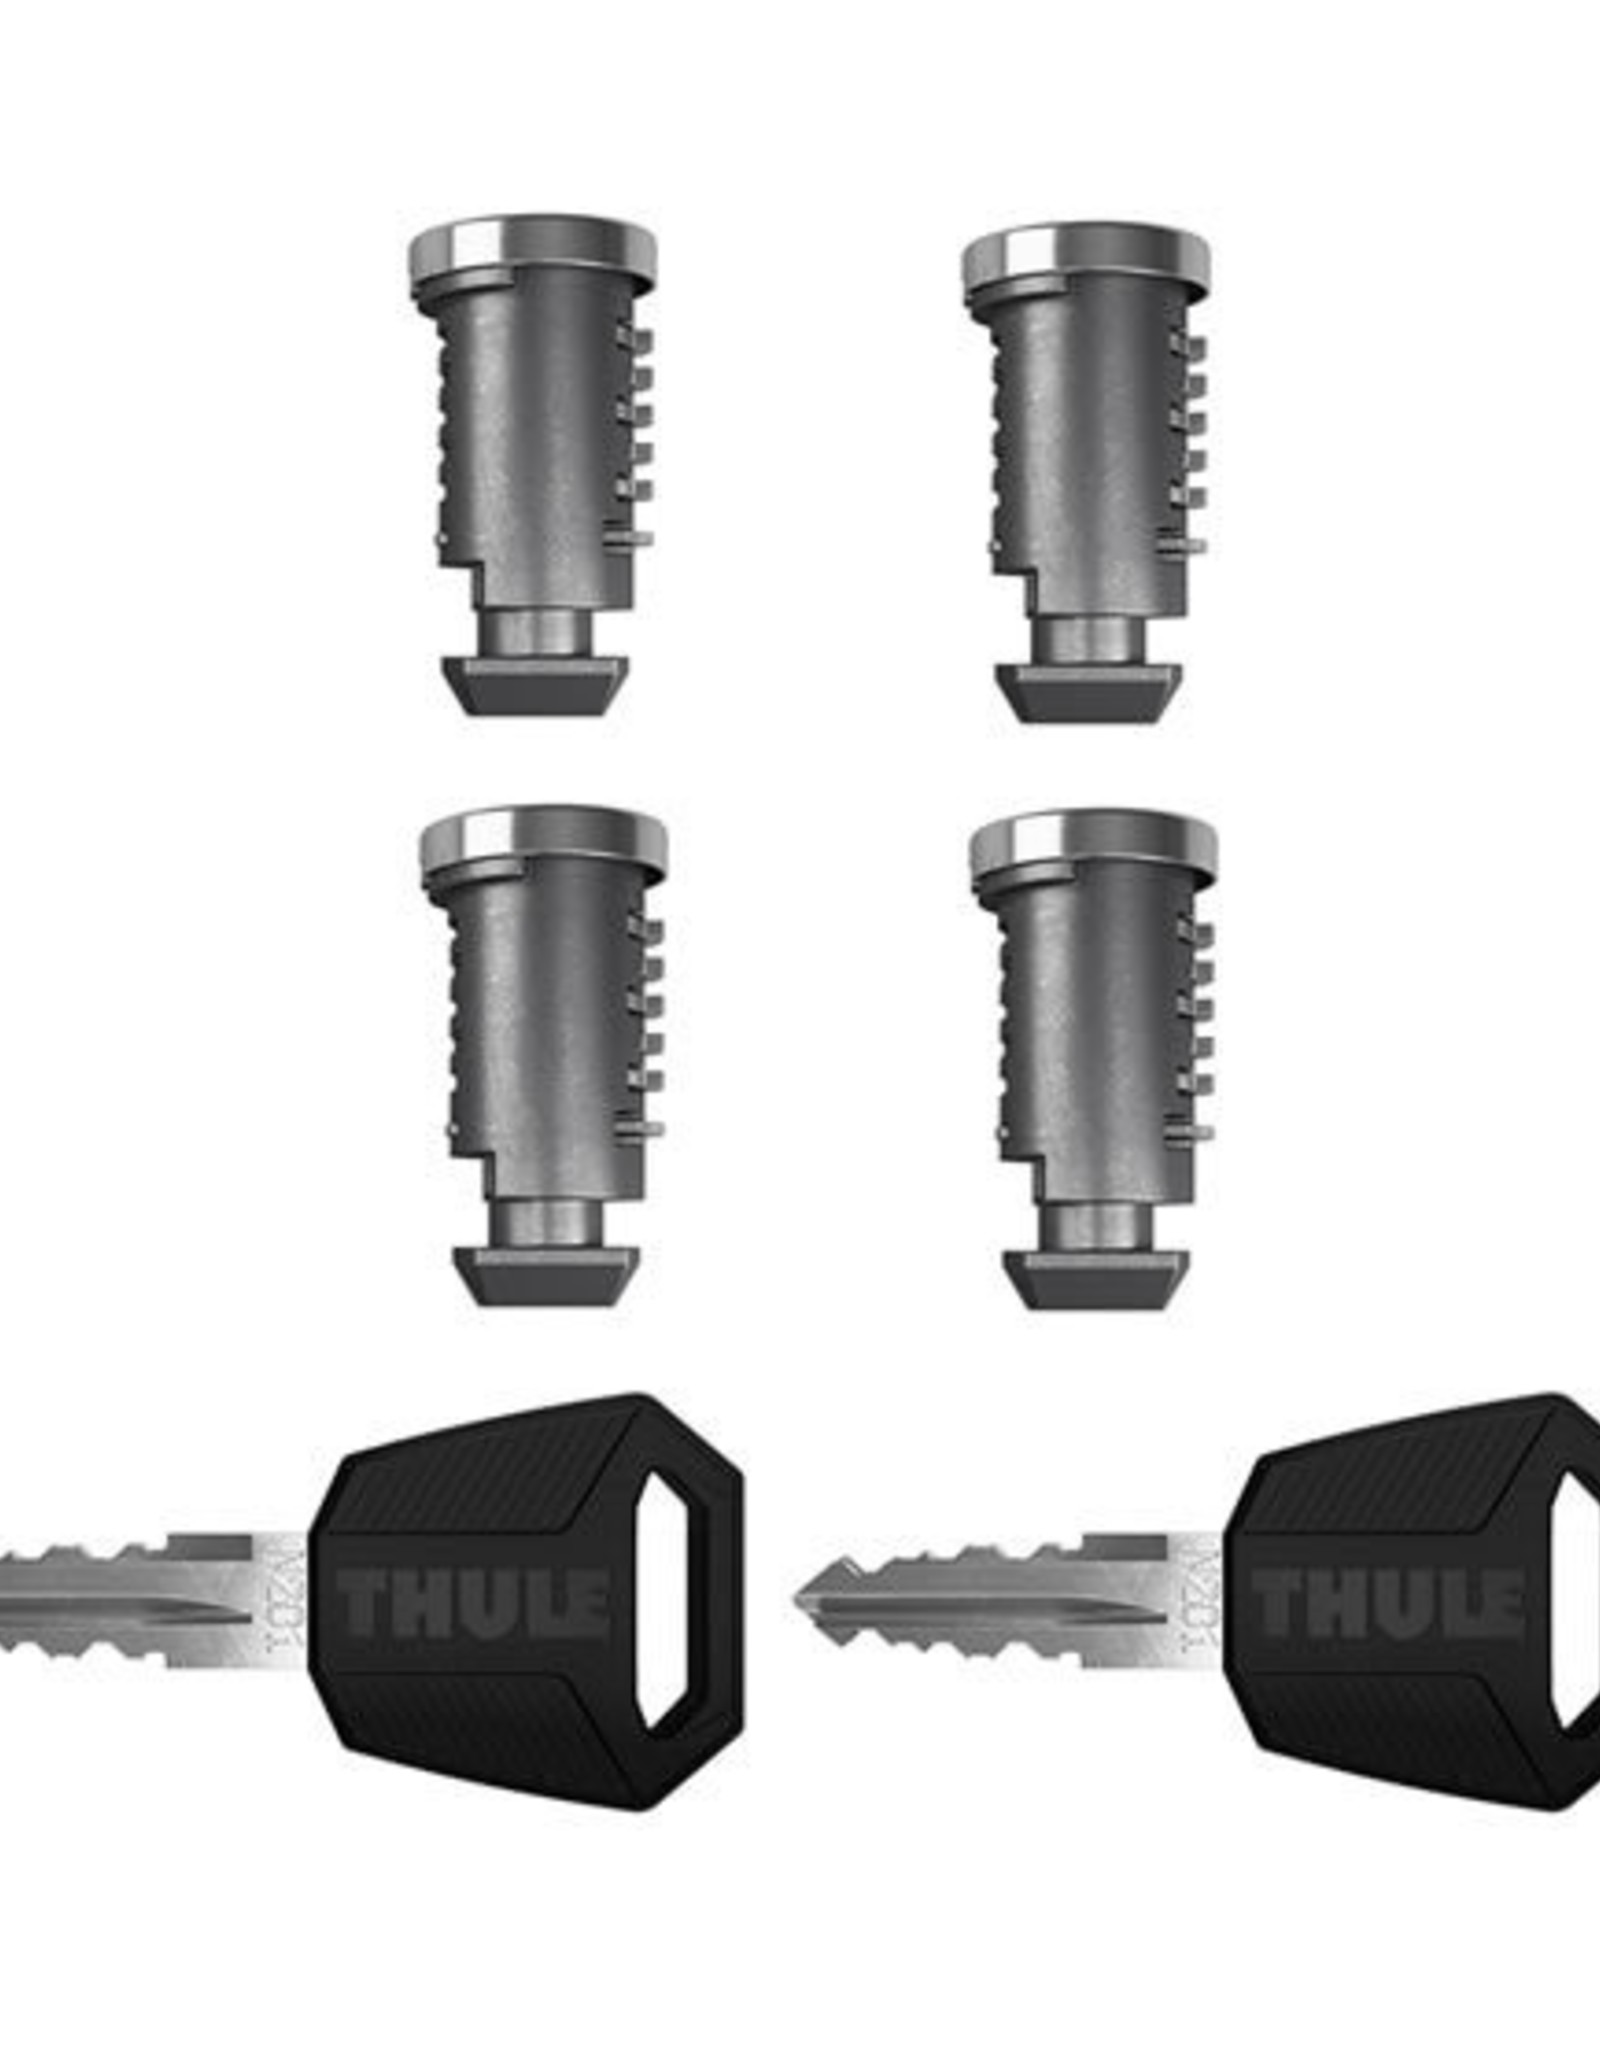 Thule Thule One-Key System 4 Pack